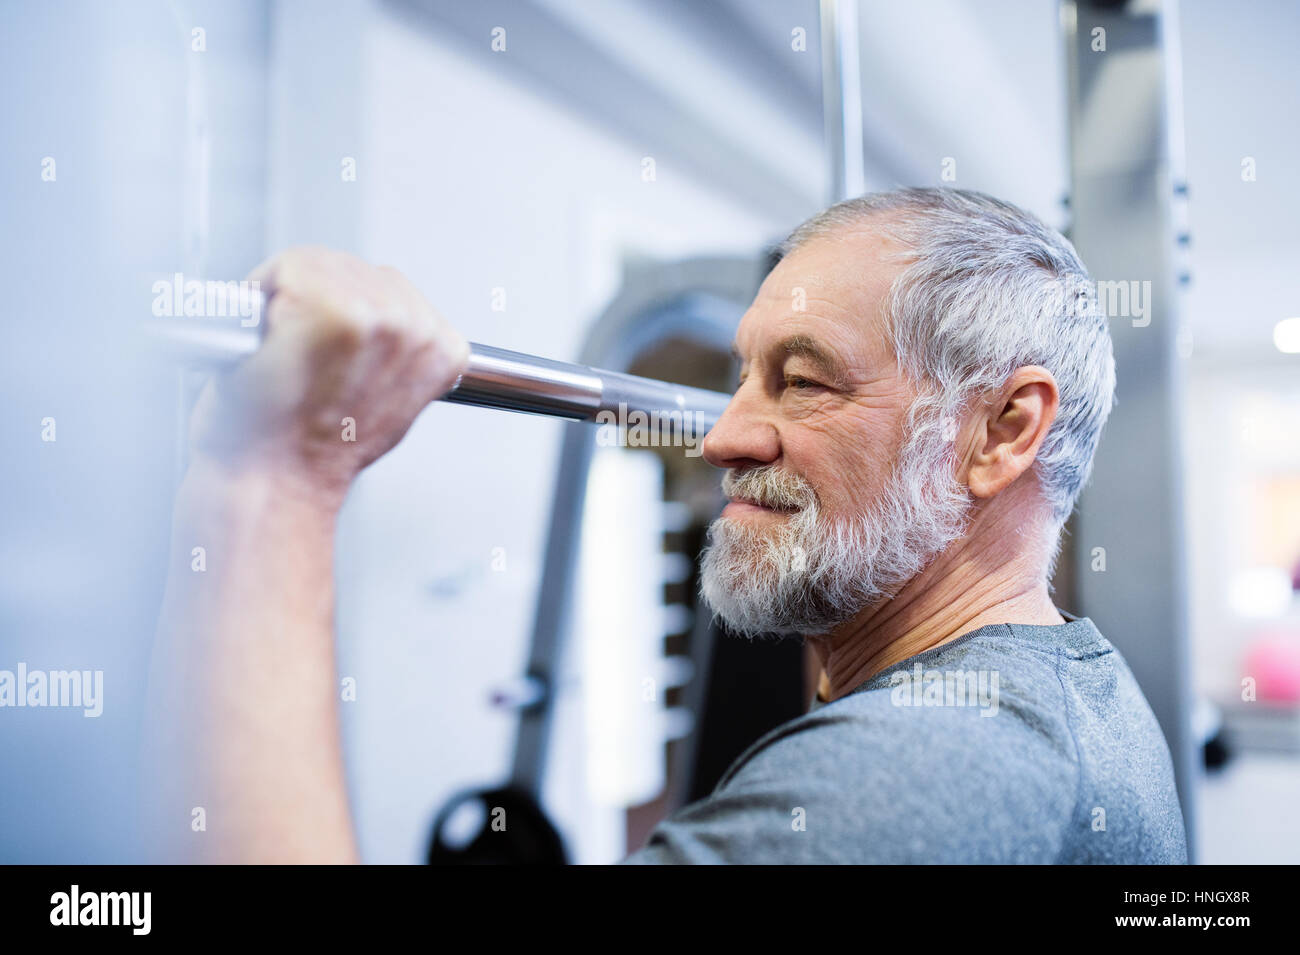 Senior man in gym doing pull-ups on horizontal bar. - Stock Image